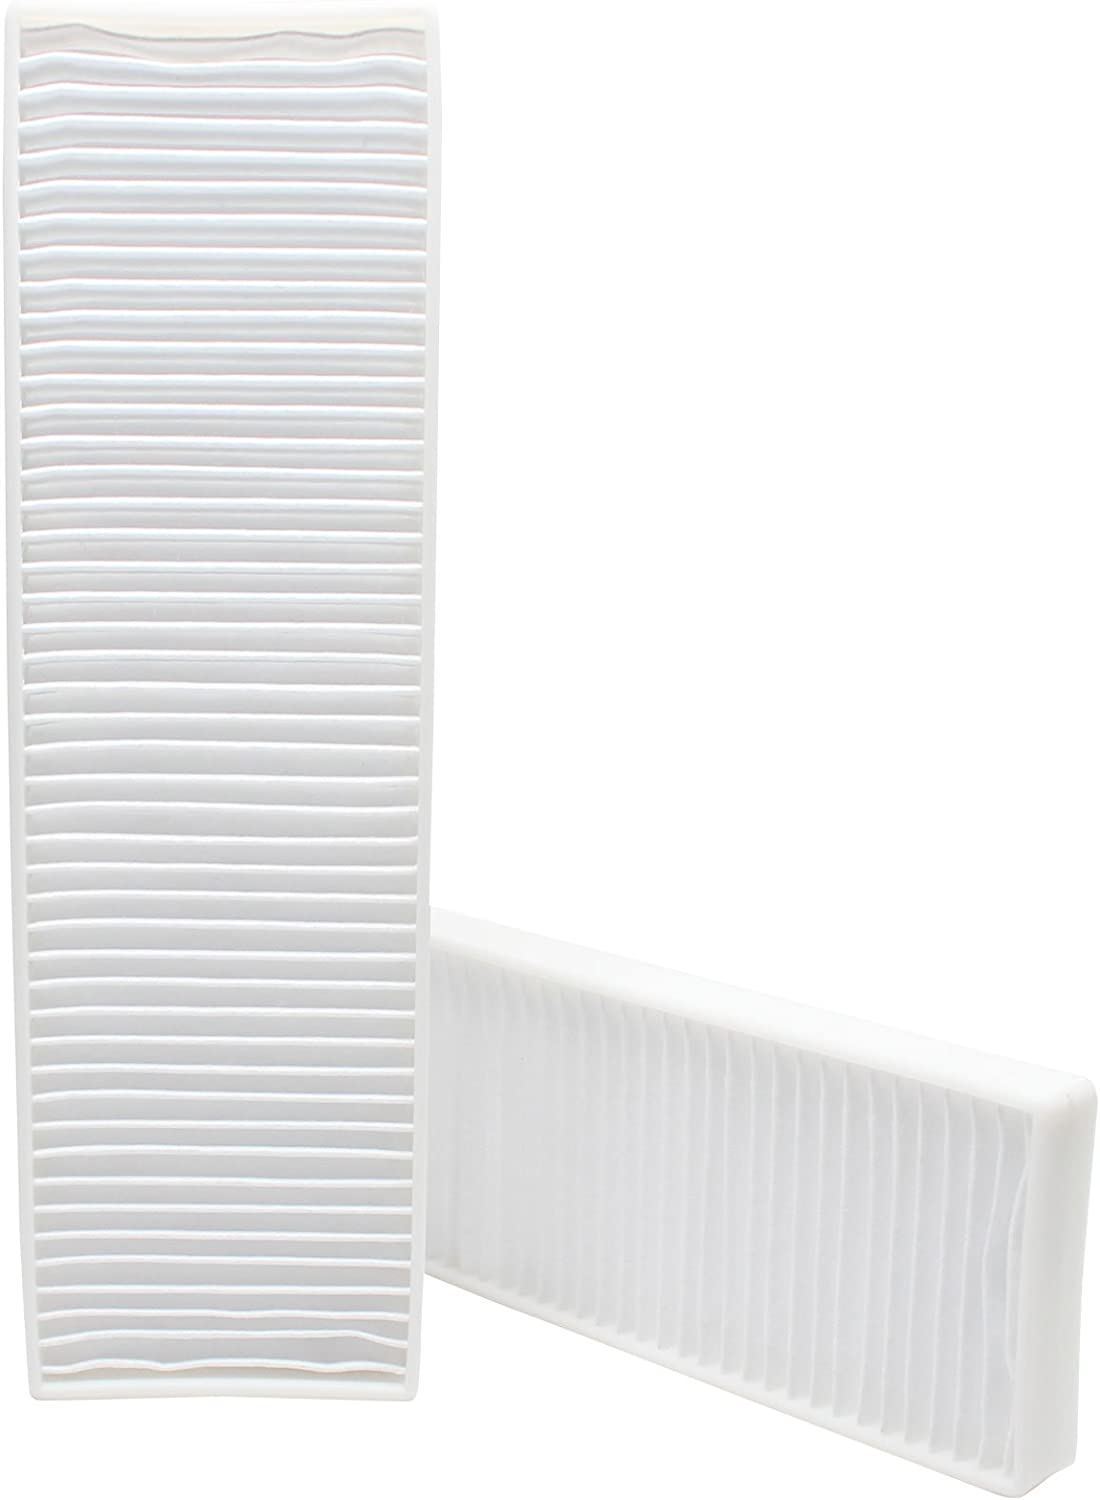 2-Pack Replacement for Bissell 21K35 Vacuum Pleated Post Motor Filter - Compatible with Bissell Style 7, 9, 16, 32076 HEPA, 82H1, 52C2, 1398, 58F83, 71Y7, 18M9X, 61C5W, 3576-6, 52C2T, 52C2W, 3863,6221